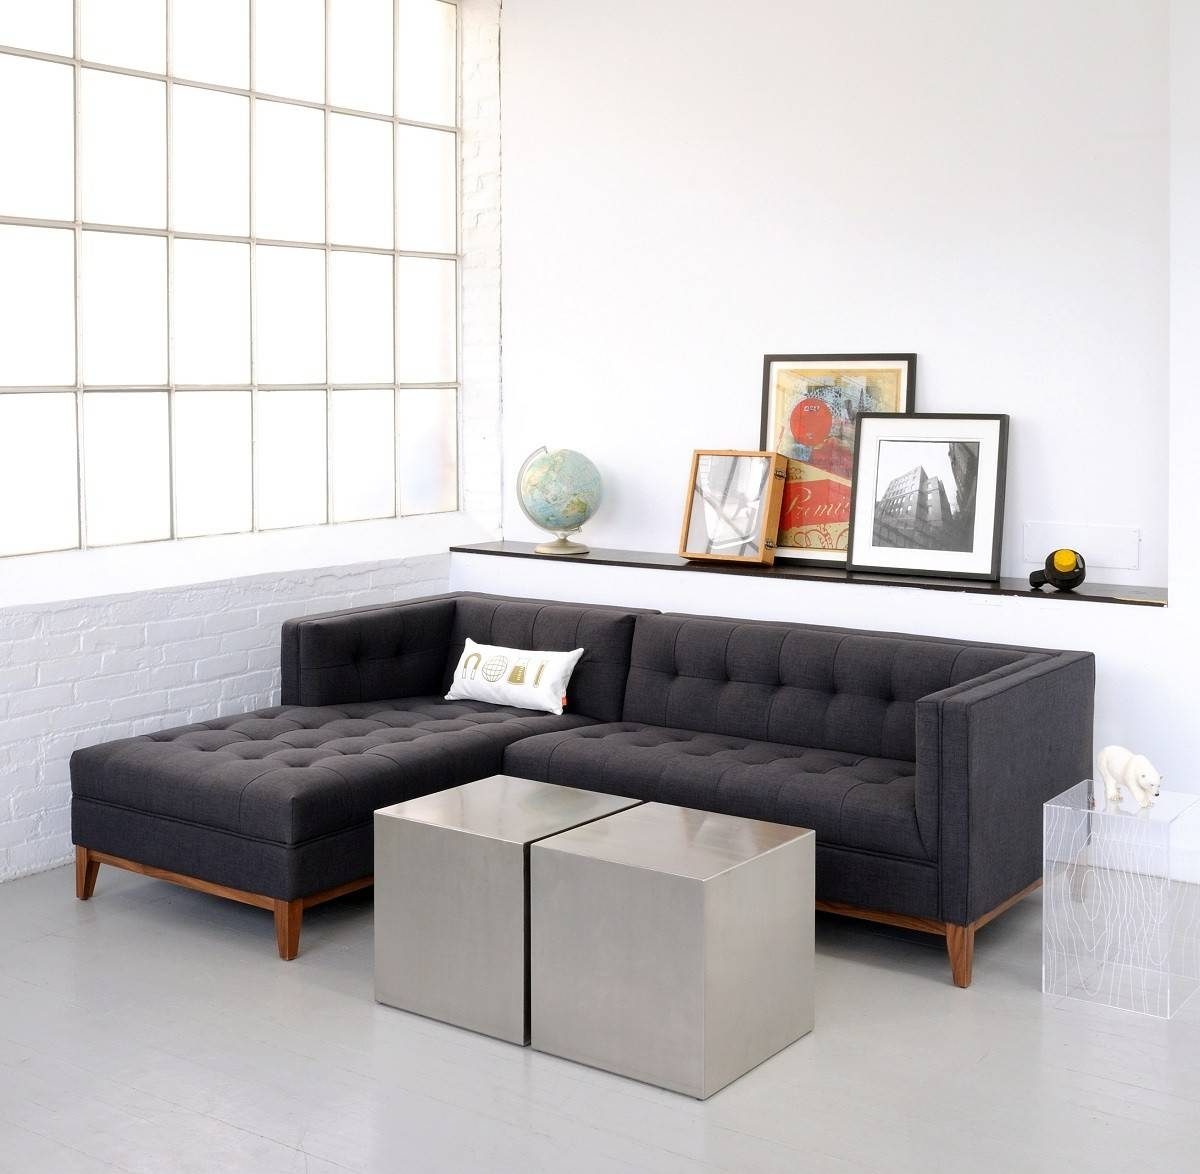 The Best Apartment Sectional Sofas Solving Function And Style Within Apartment Sofa Sectional (Image 28 of 30)